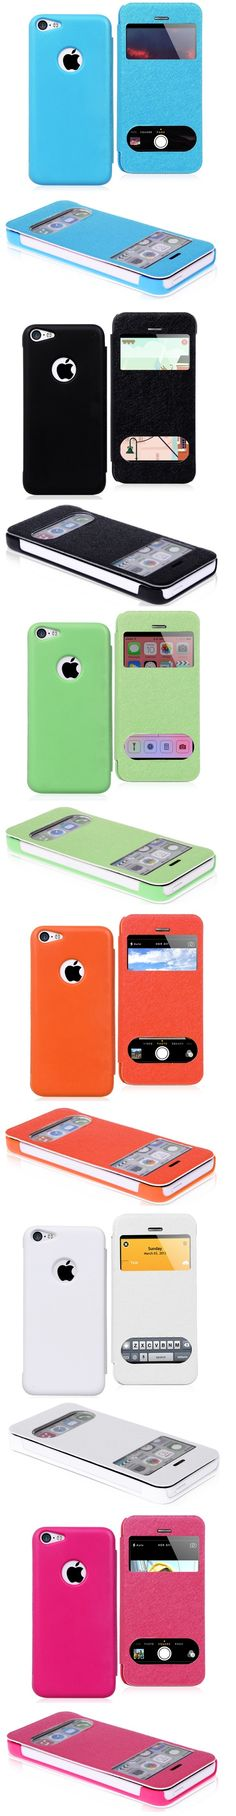 iPhone 5C S View Cover Case Protective Back Cover for iPhone 5C #Sview #cover #case #iphone5C #iphone #iphonecases #iphone5Ccase #freeshipping #loweprice #bigoffers #discounts #newiphone #apple #iphonecovers $3.49